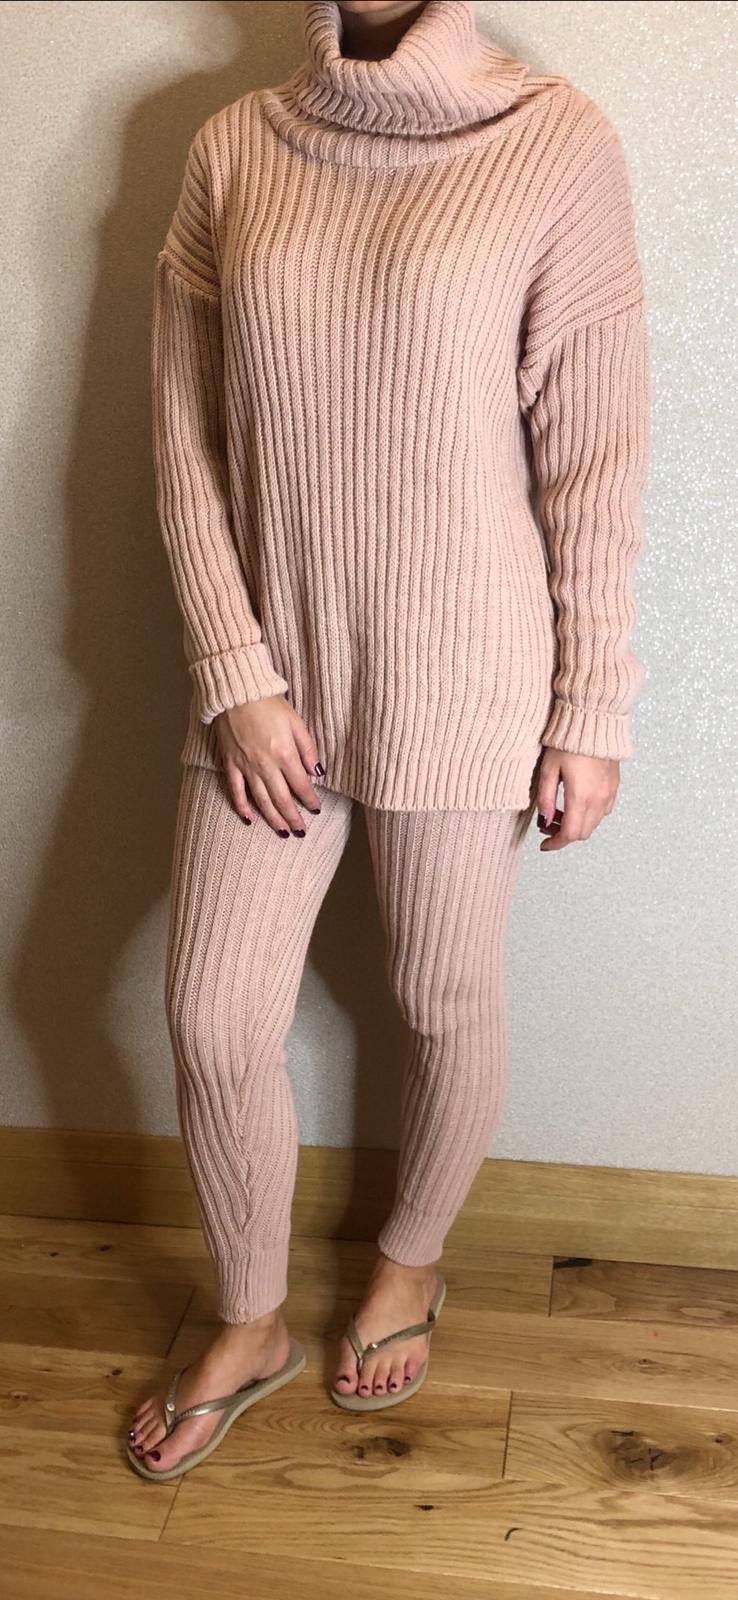 MS x SI Cosy Roll Neck Ribbed Two Piece Loungeset - Pink